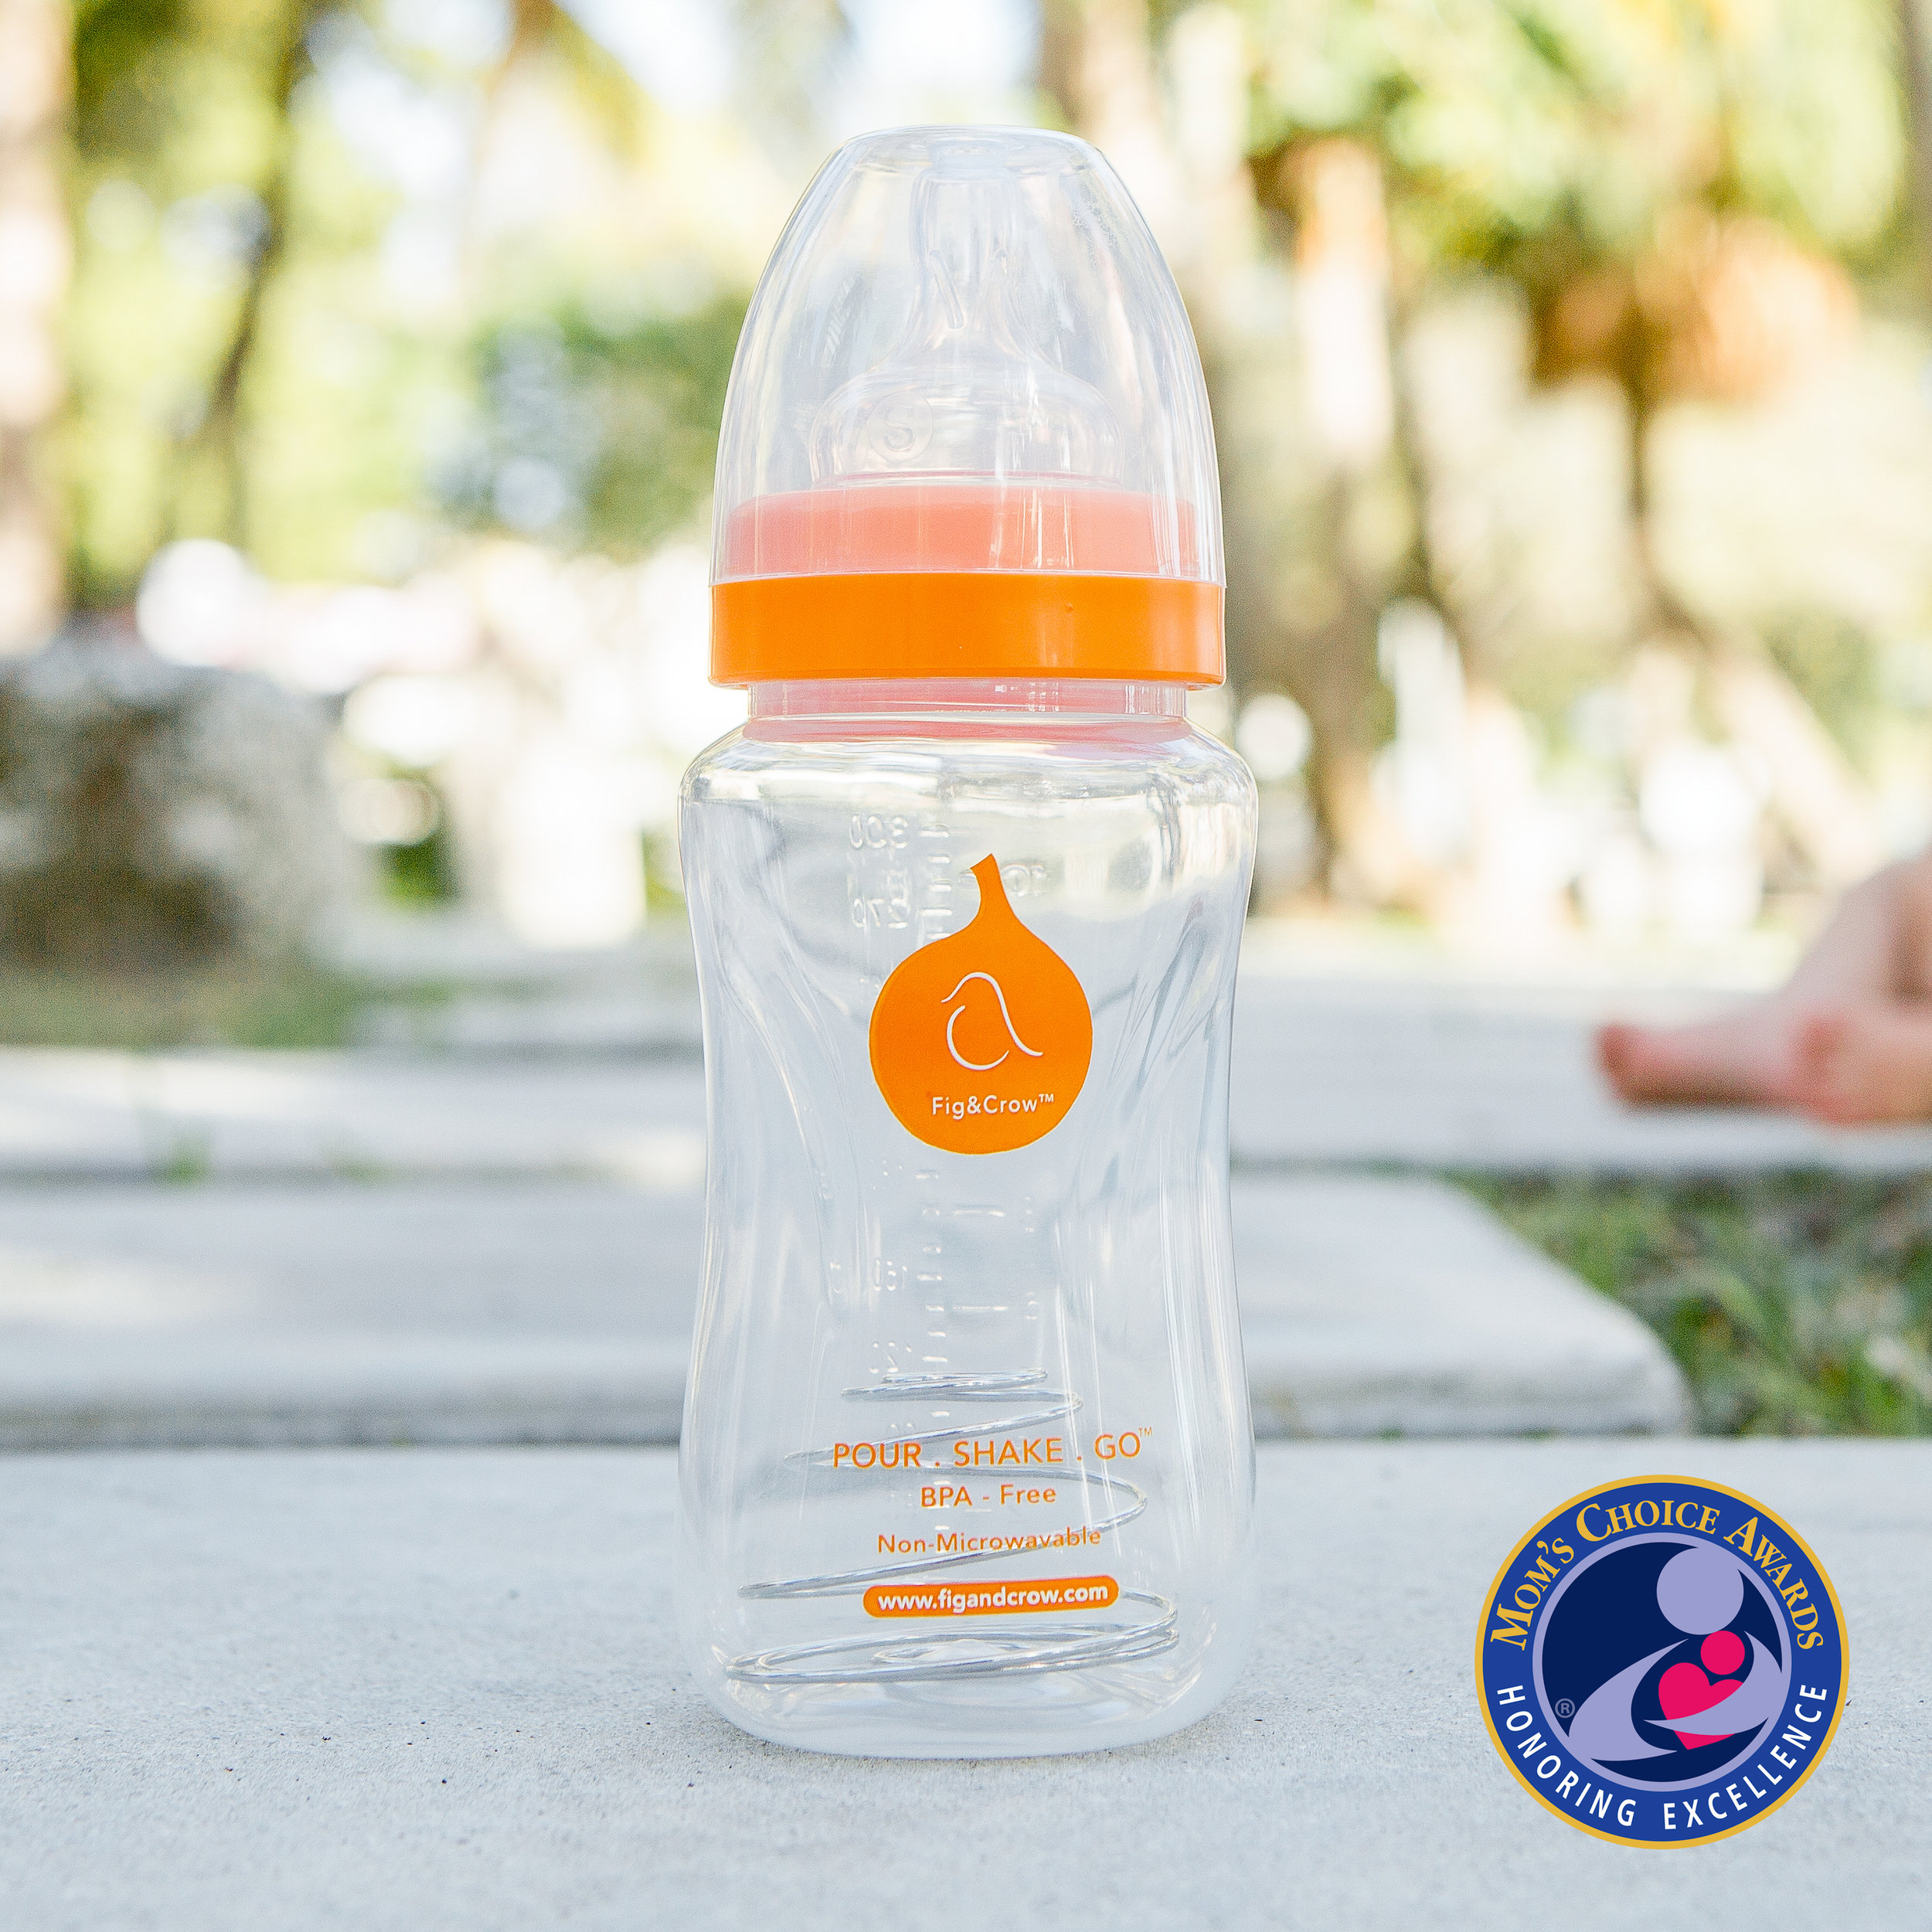 POUR . SHAKE . GO - The Ultimate Feeding Bottle For The Parent On The Go- 10 oz. Wide-Neck Bottle- BPA, Phthalate and PVC Free- 100% Food Grade Liquid Silicone Rubber Nipple- PP (Polypropylene) Bottle- USA Made, Food Grade Stainless Steel Coil- Non-Removable Coil- Dishwasher Safe- Non-toxic- Non-microwaveable- Recommended For Ages 6+ MonthsWinner of Mom's Choice Gold Award Honoring Excellence